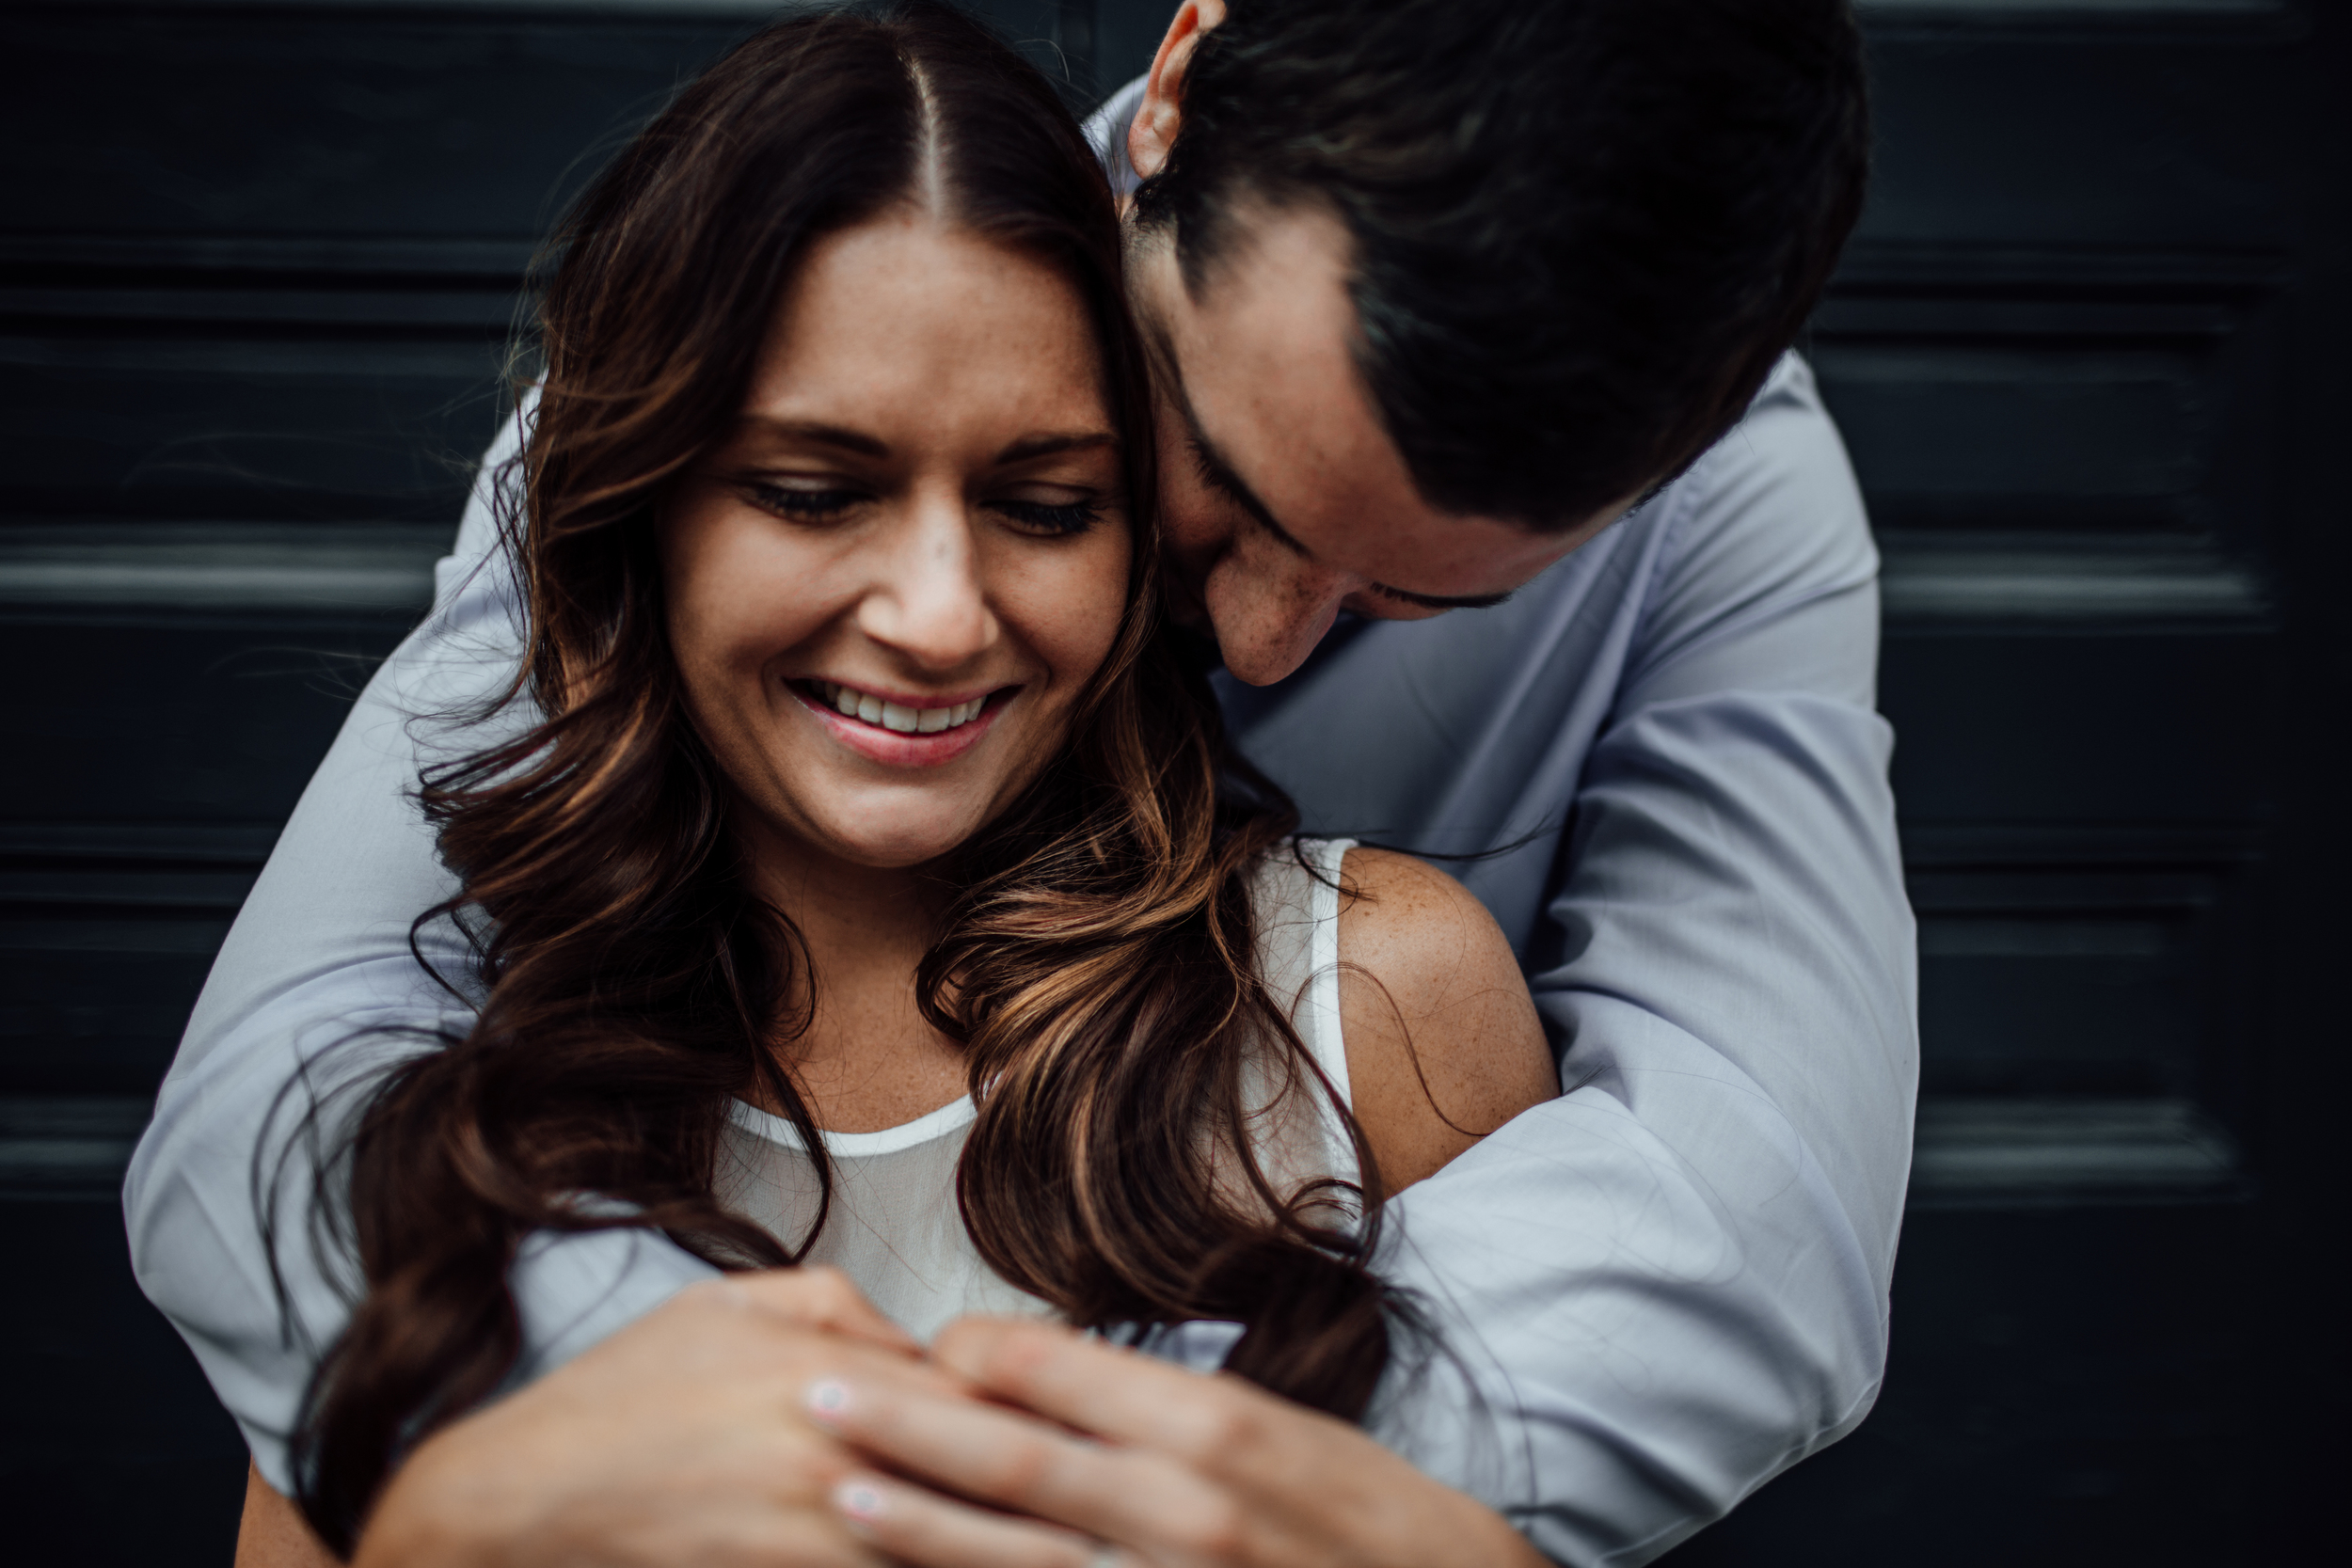 BRITTANYandKEVIN-Engagement2015 (46 of 115).jpg